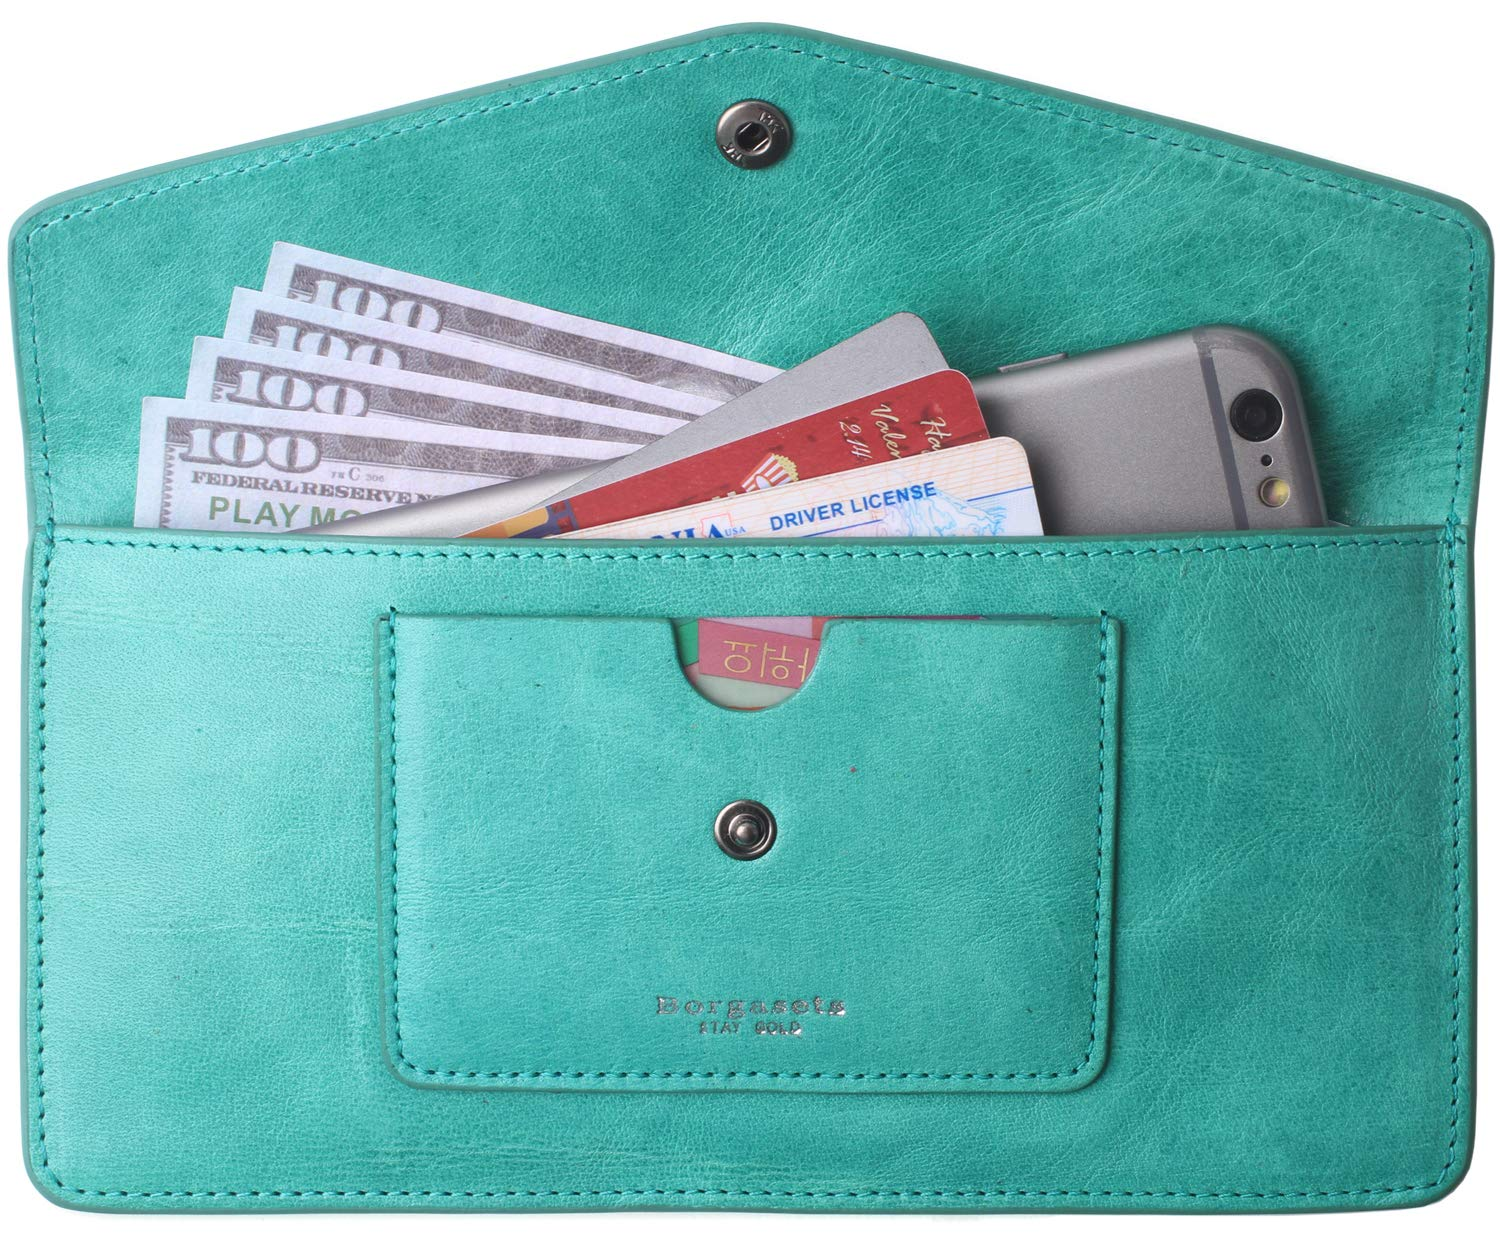 Wallets for Women Leather RFID Credit Card Holder Thin Ladies Phone Wallet Purse Light Peacock Blue